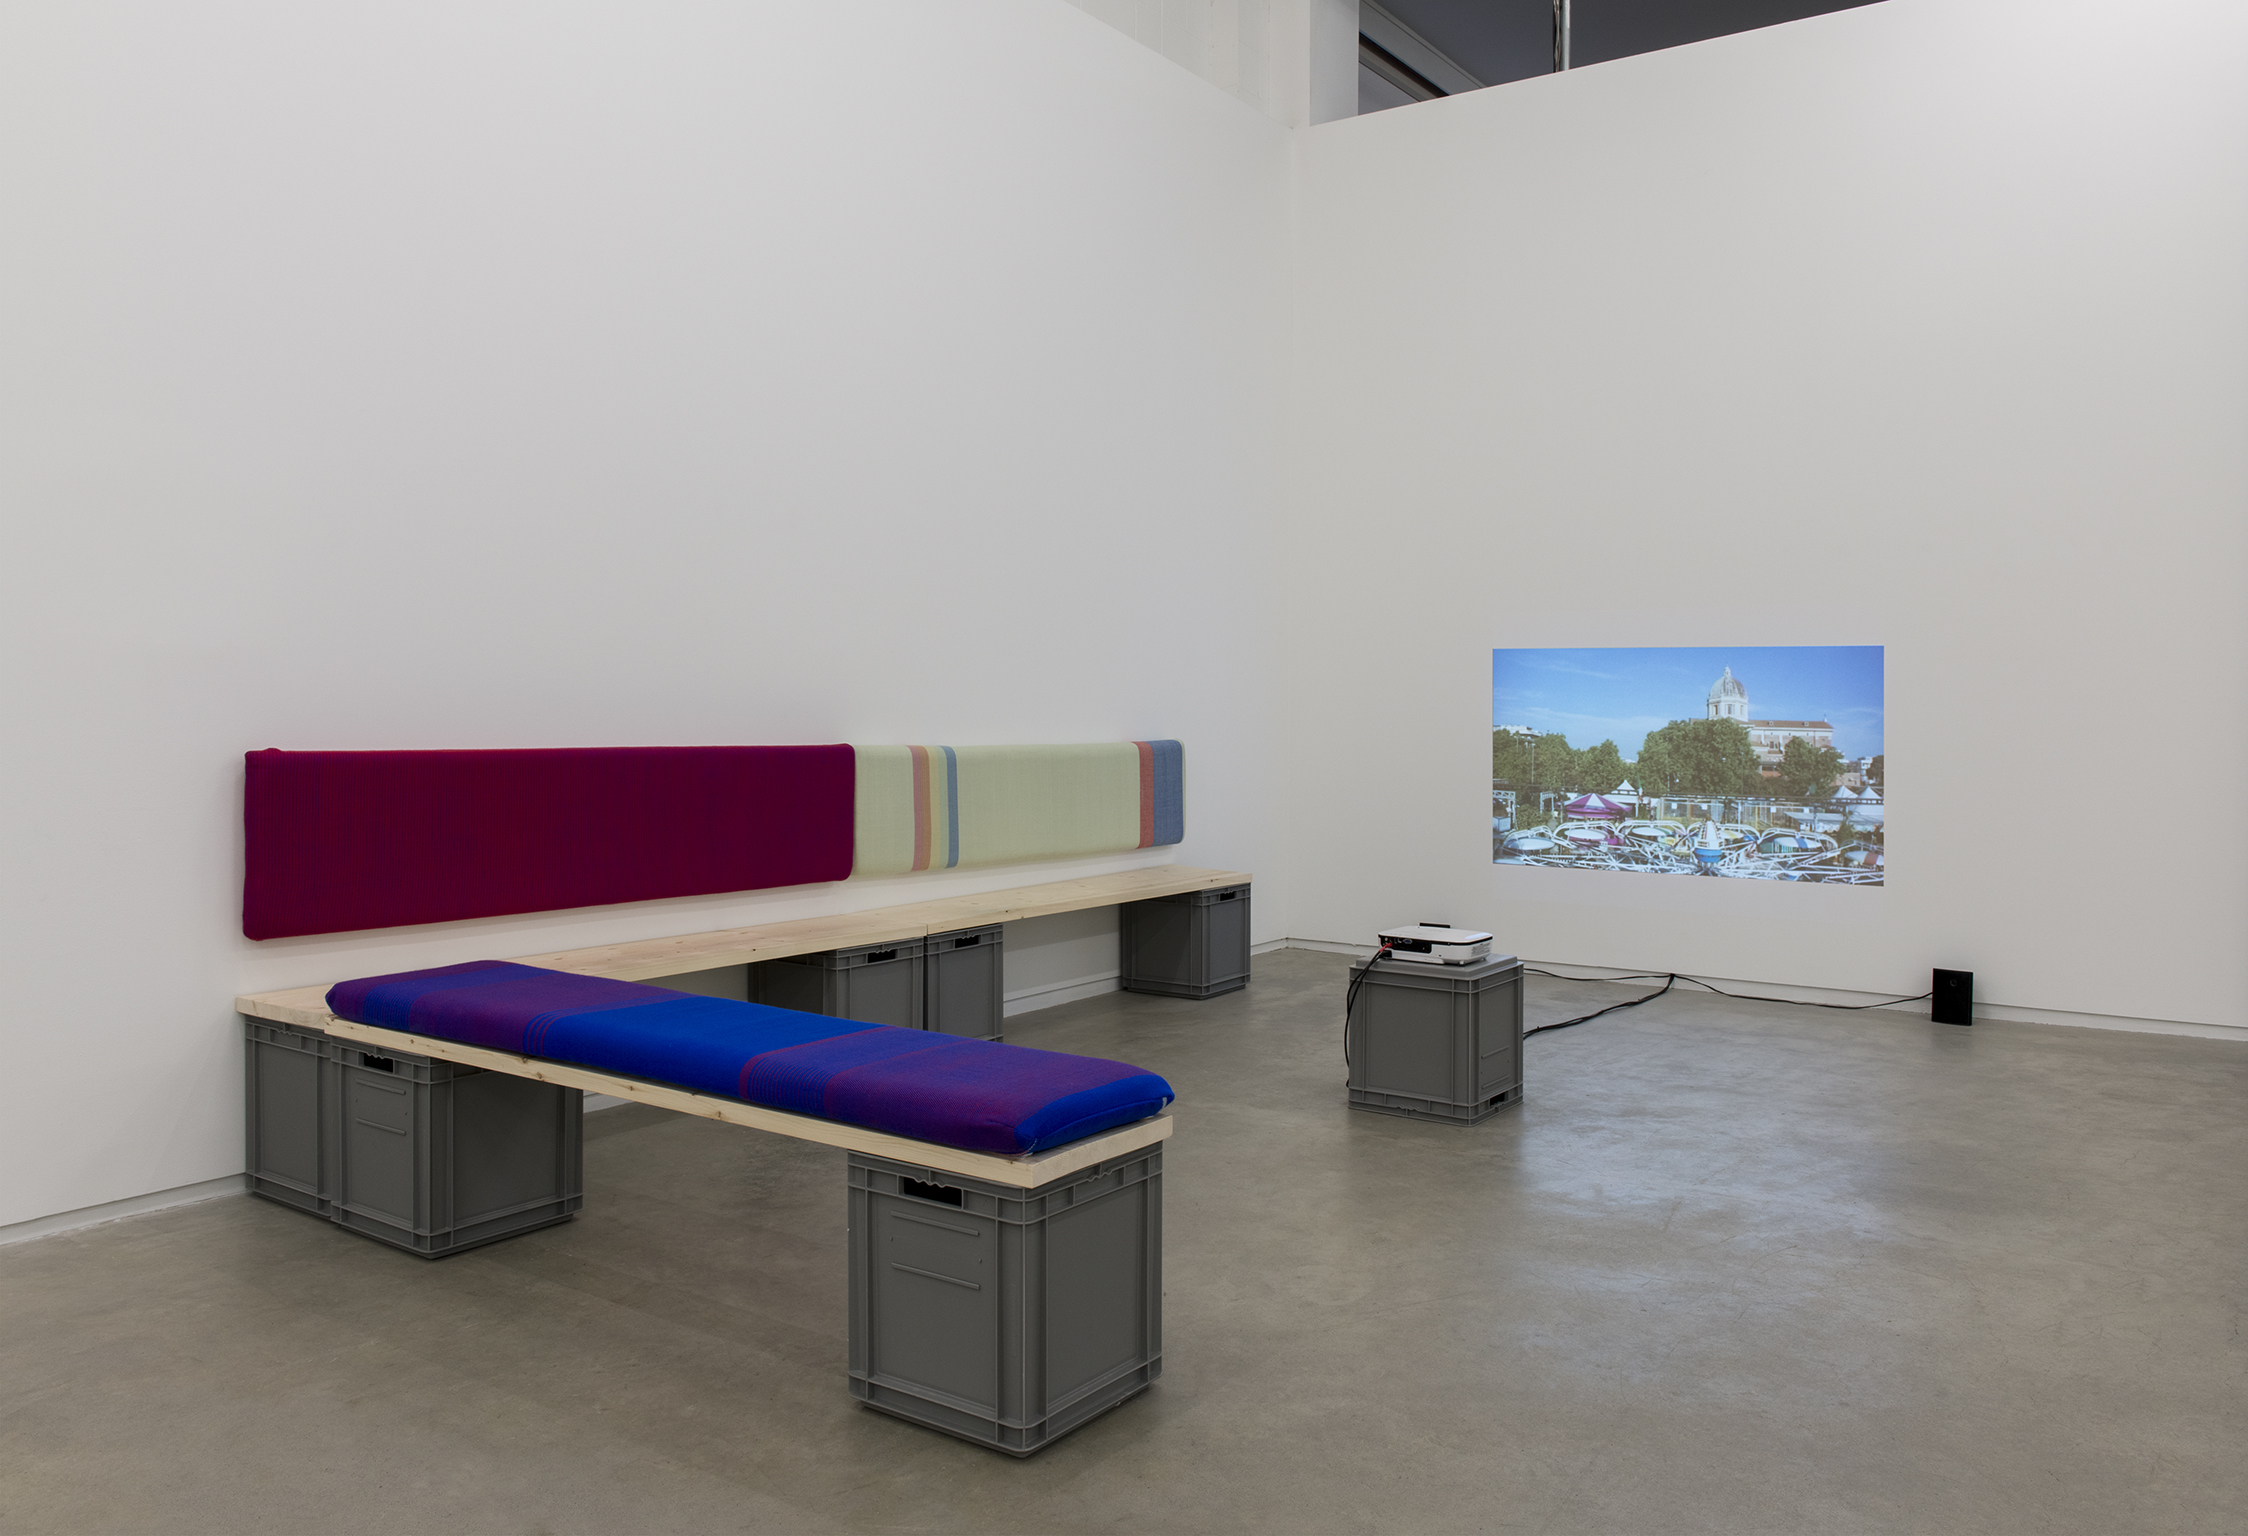 Andrea Büttner, Benches, 2013, handwoven wool backrests, spruce, plastic crates, each 37 x 78 x 16 in. (93 x 2 x 40 cm), Little sisters, Lunapark, Ostia, 2012, HDV, dimensions variable by